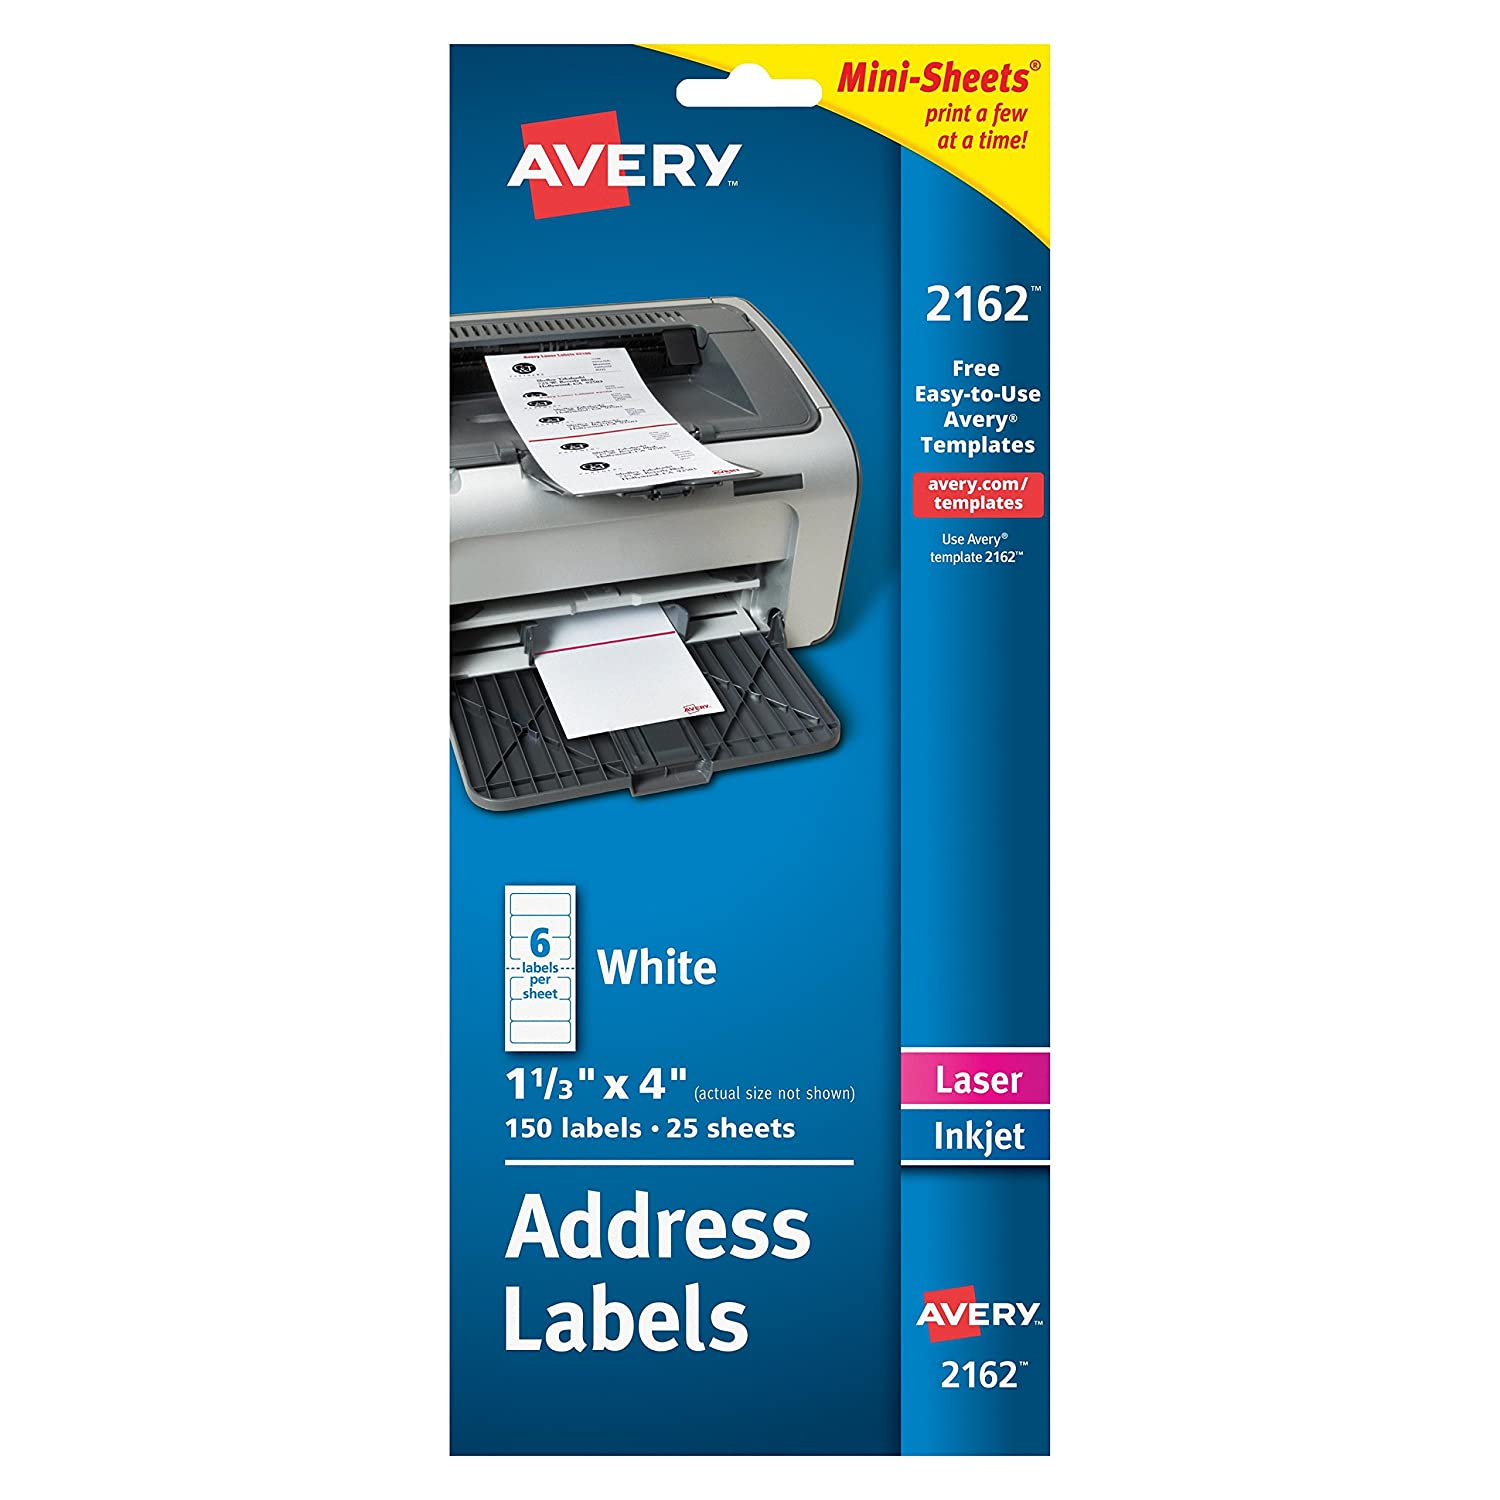 amazoncom avery mini sheets shipping labels 1 13 x 4 pack of 150 2162 shipping labels office products